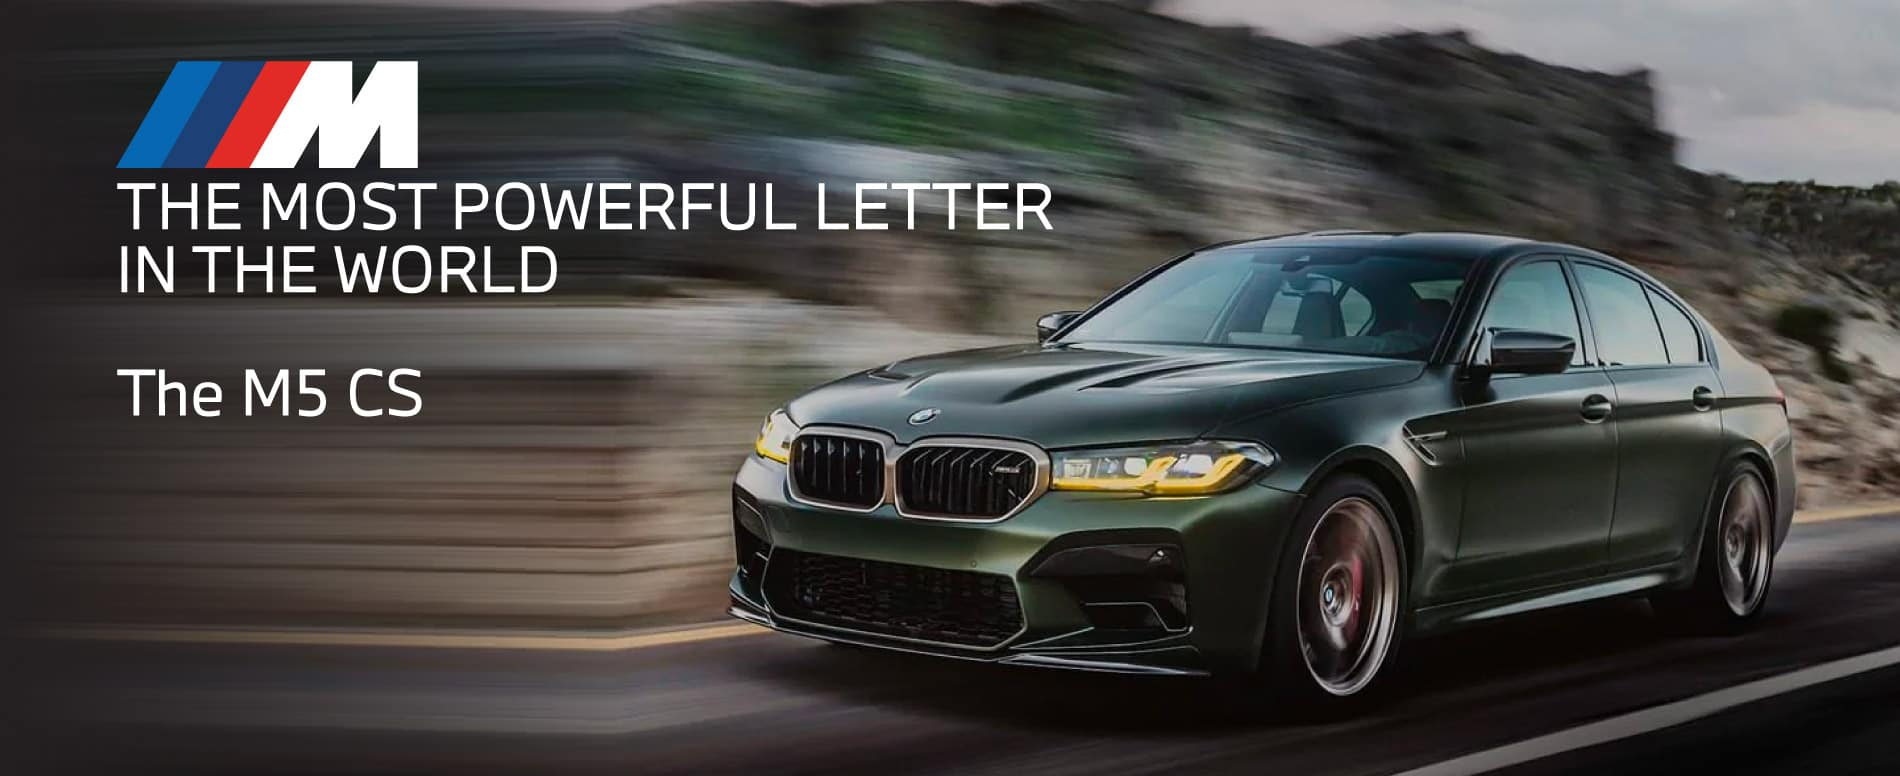 The Most Powerful Letter in the world. The M5 CS